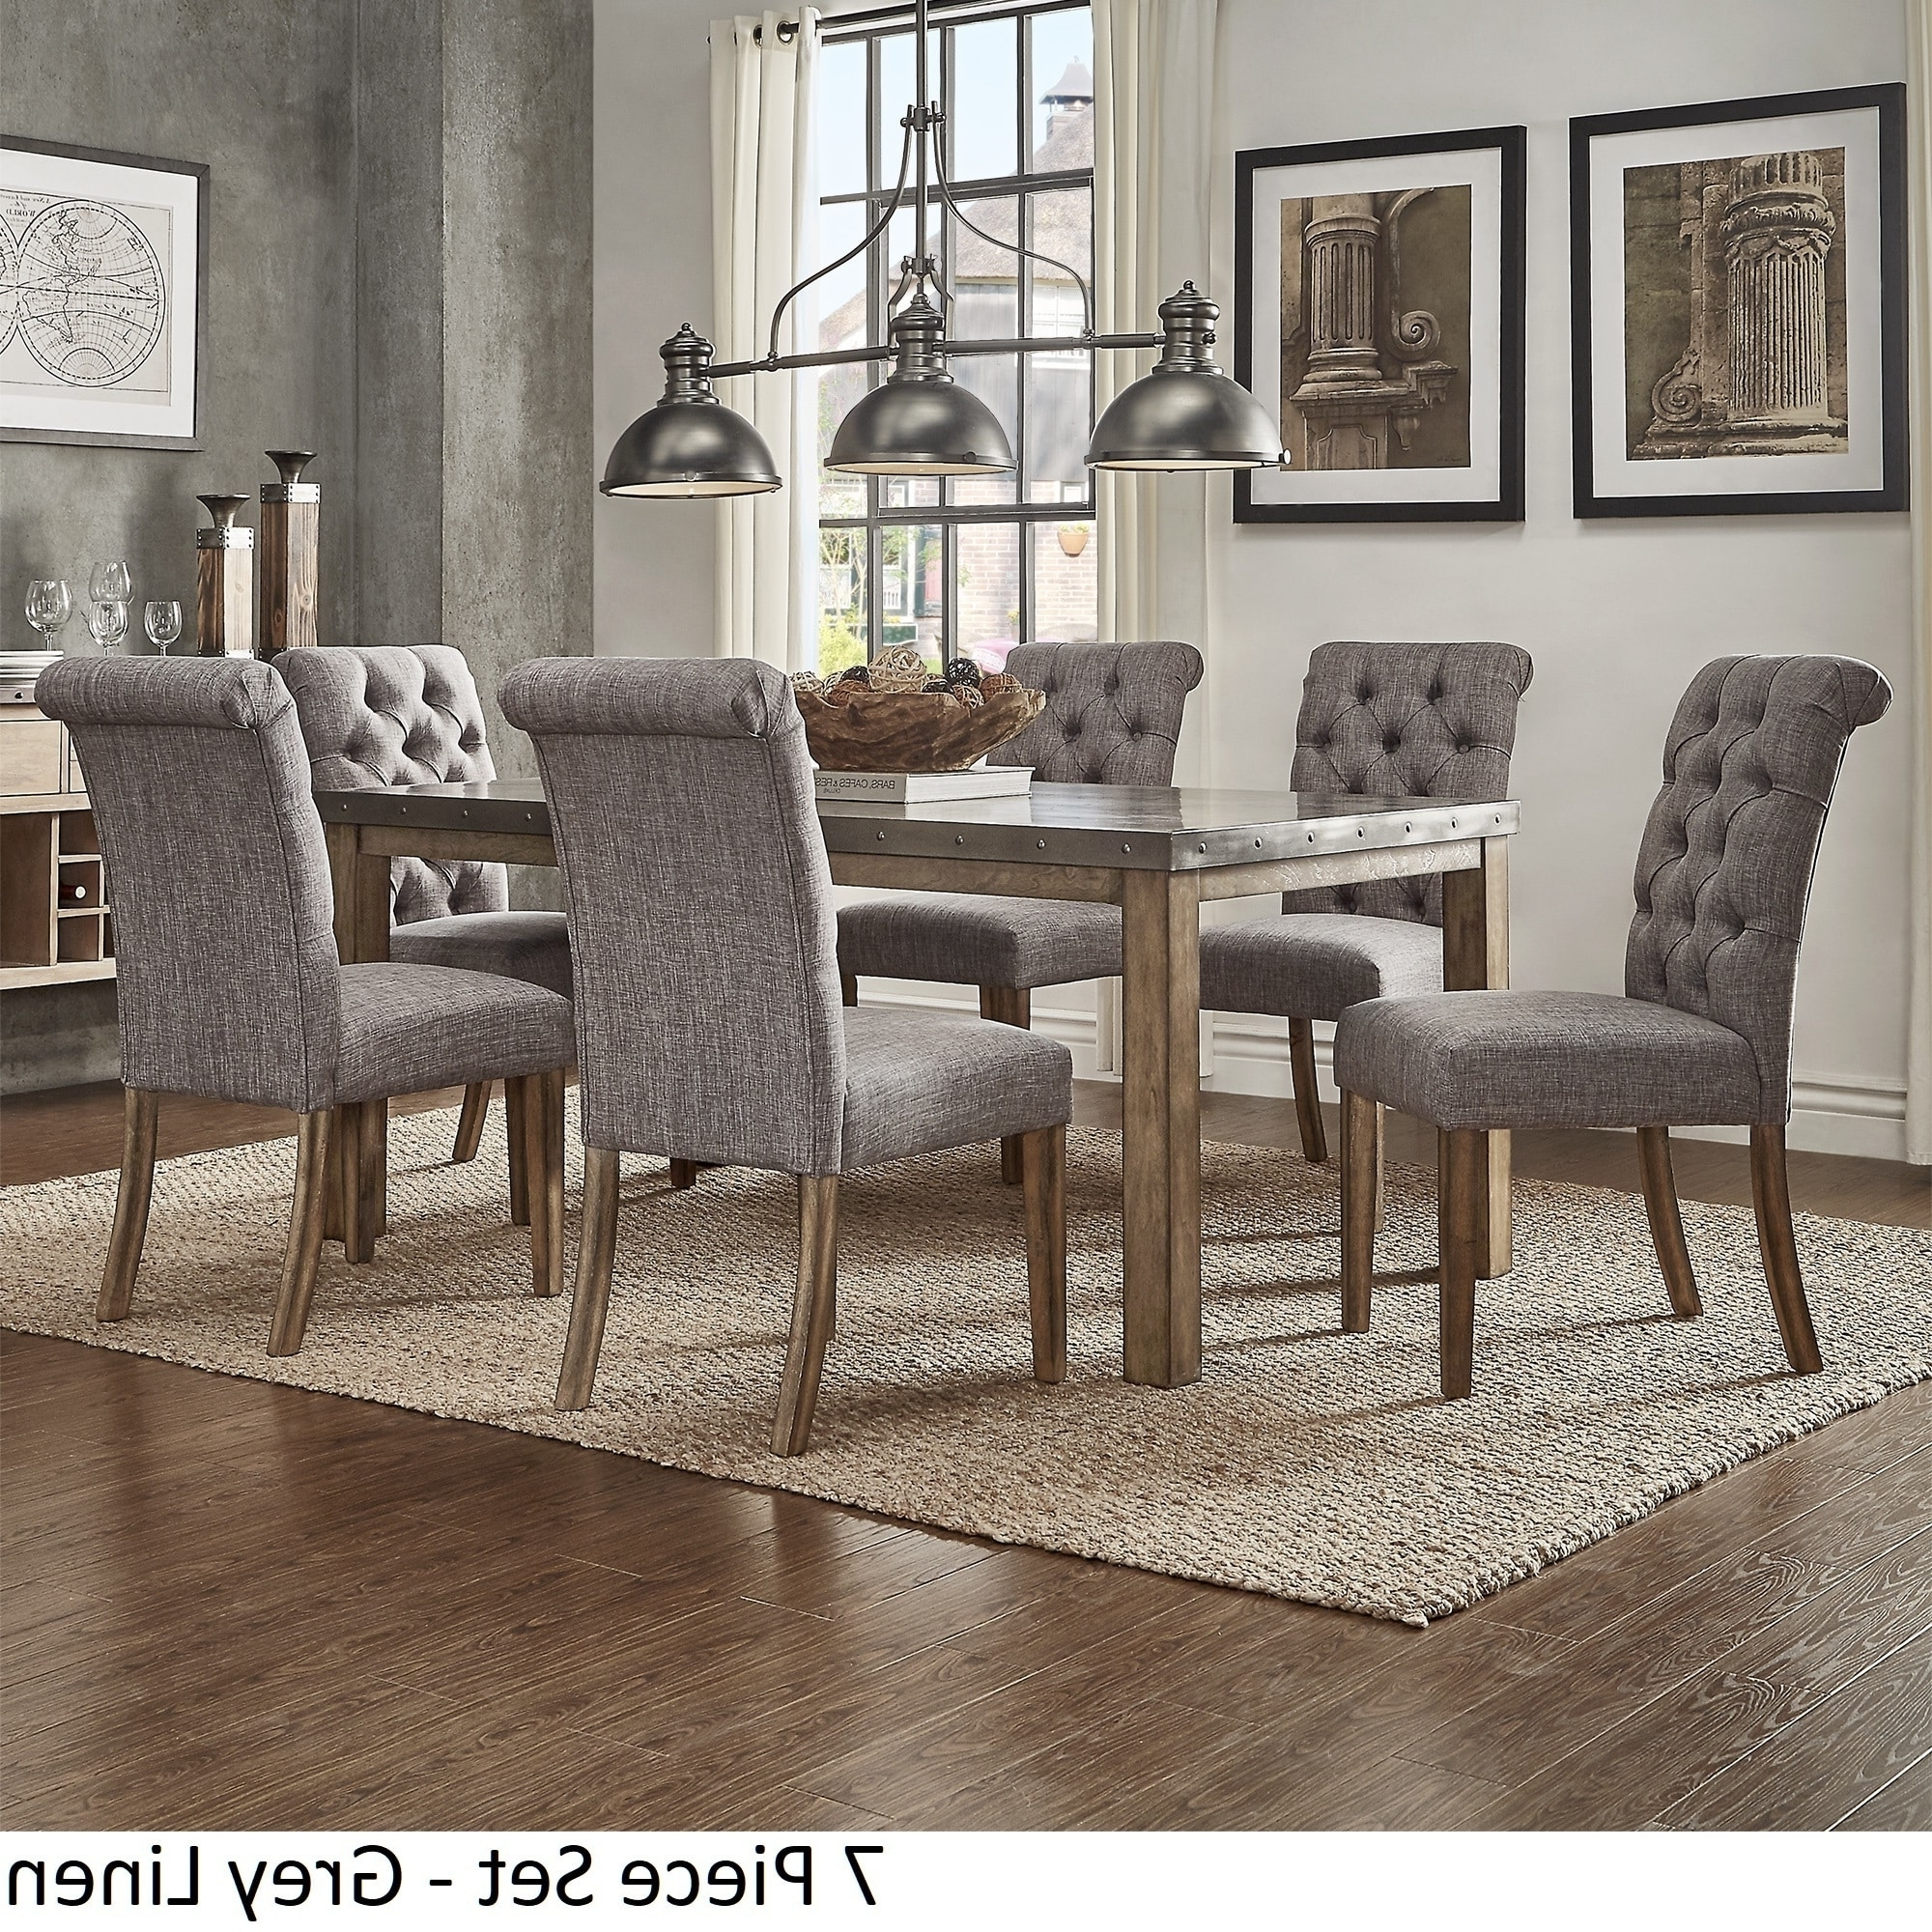 Preferred Dining Table Sets For Cassidy Stainless Steel Top Rectangle Dining Table Setinspire Q (Gallery 1 of 25)